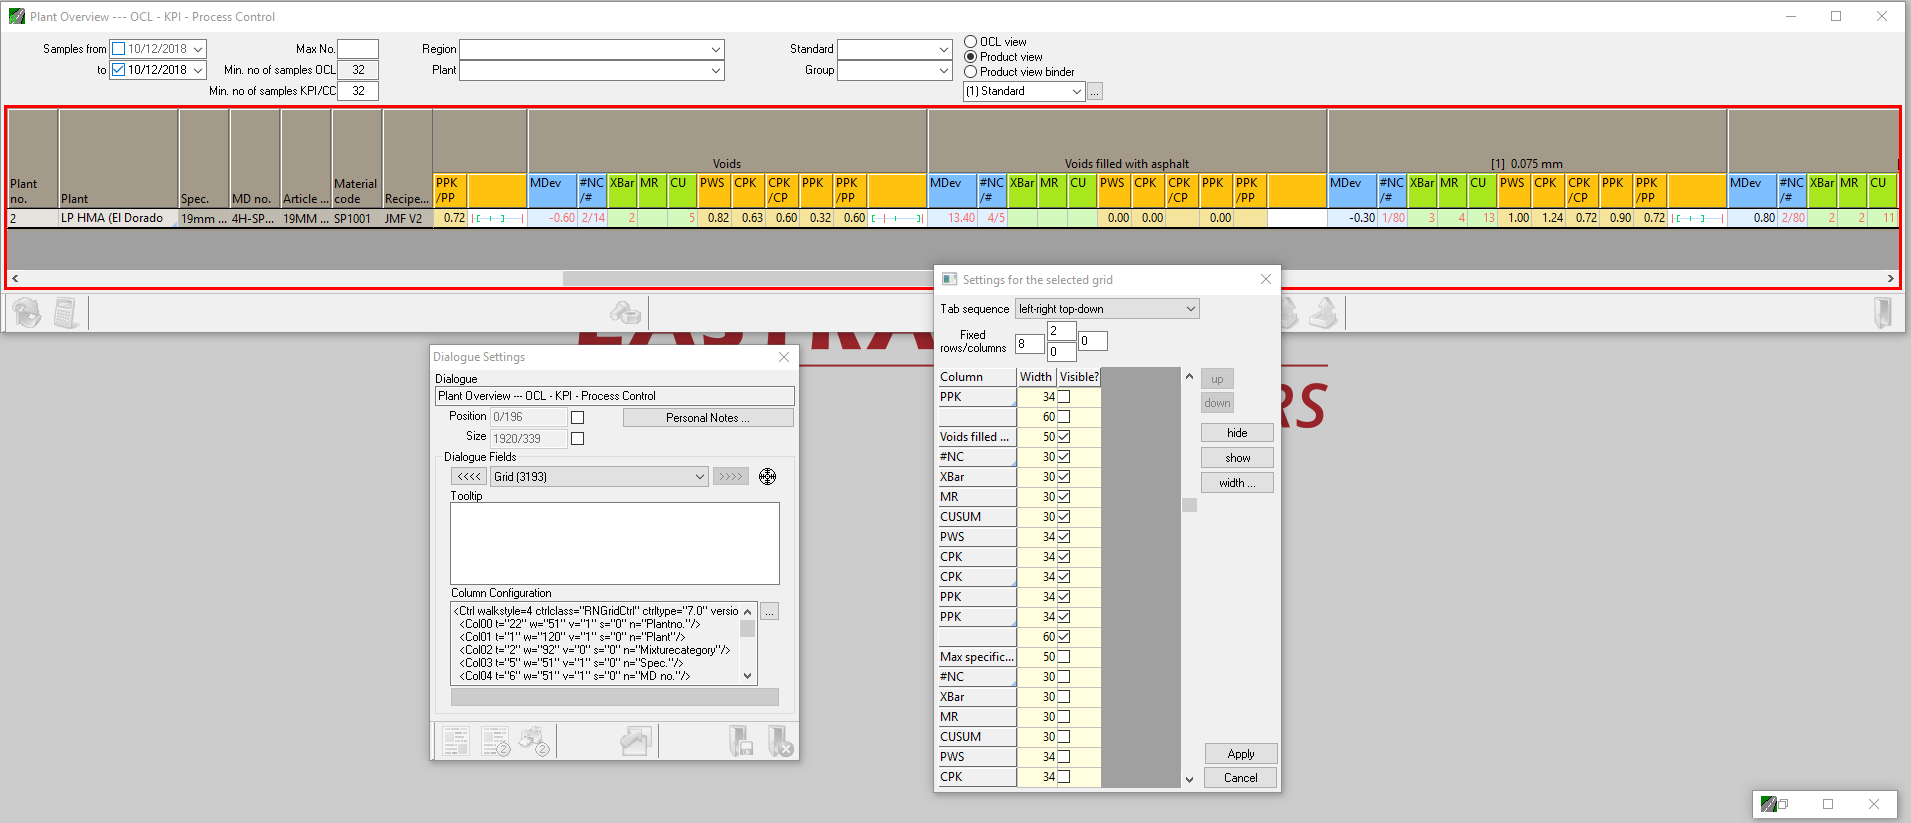 Construction Materials Testing DashBoard Showing Configuration